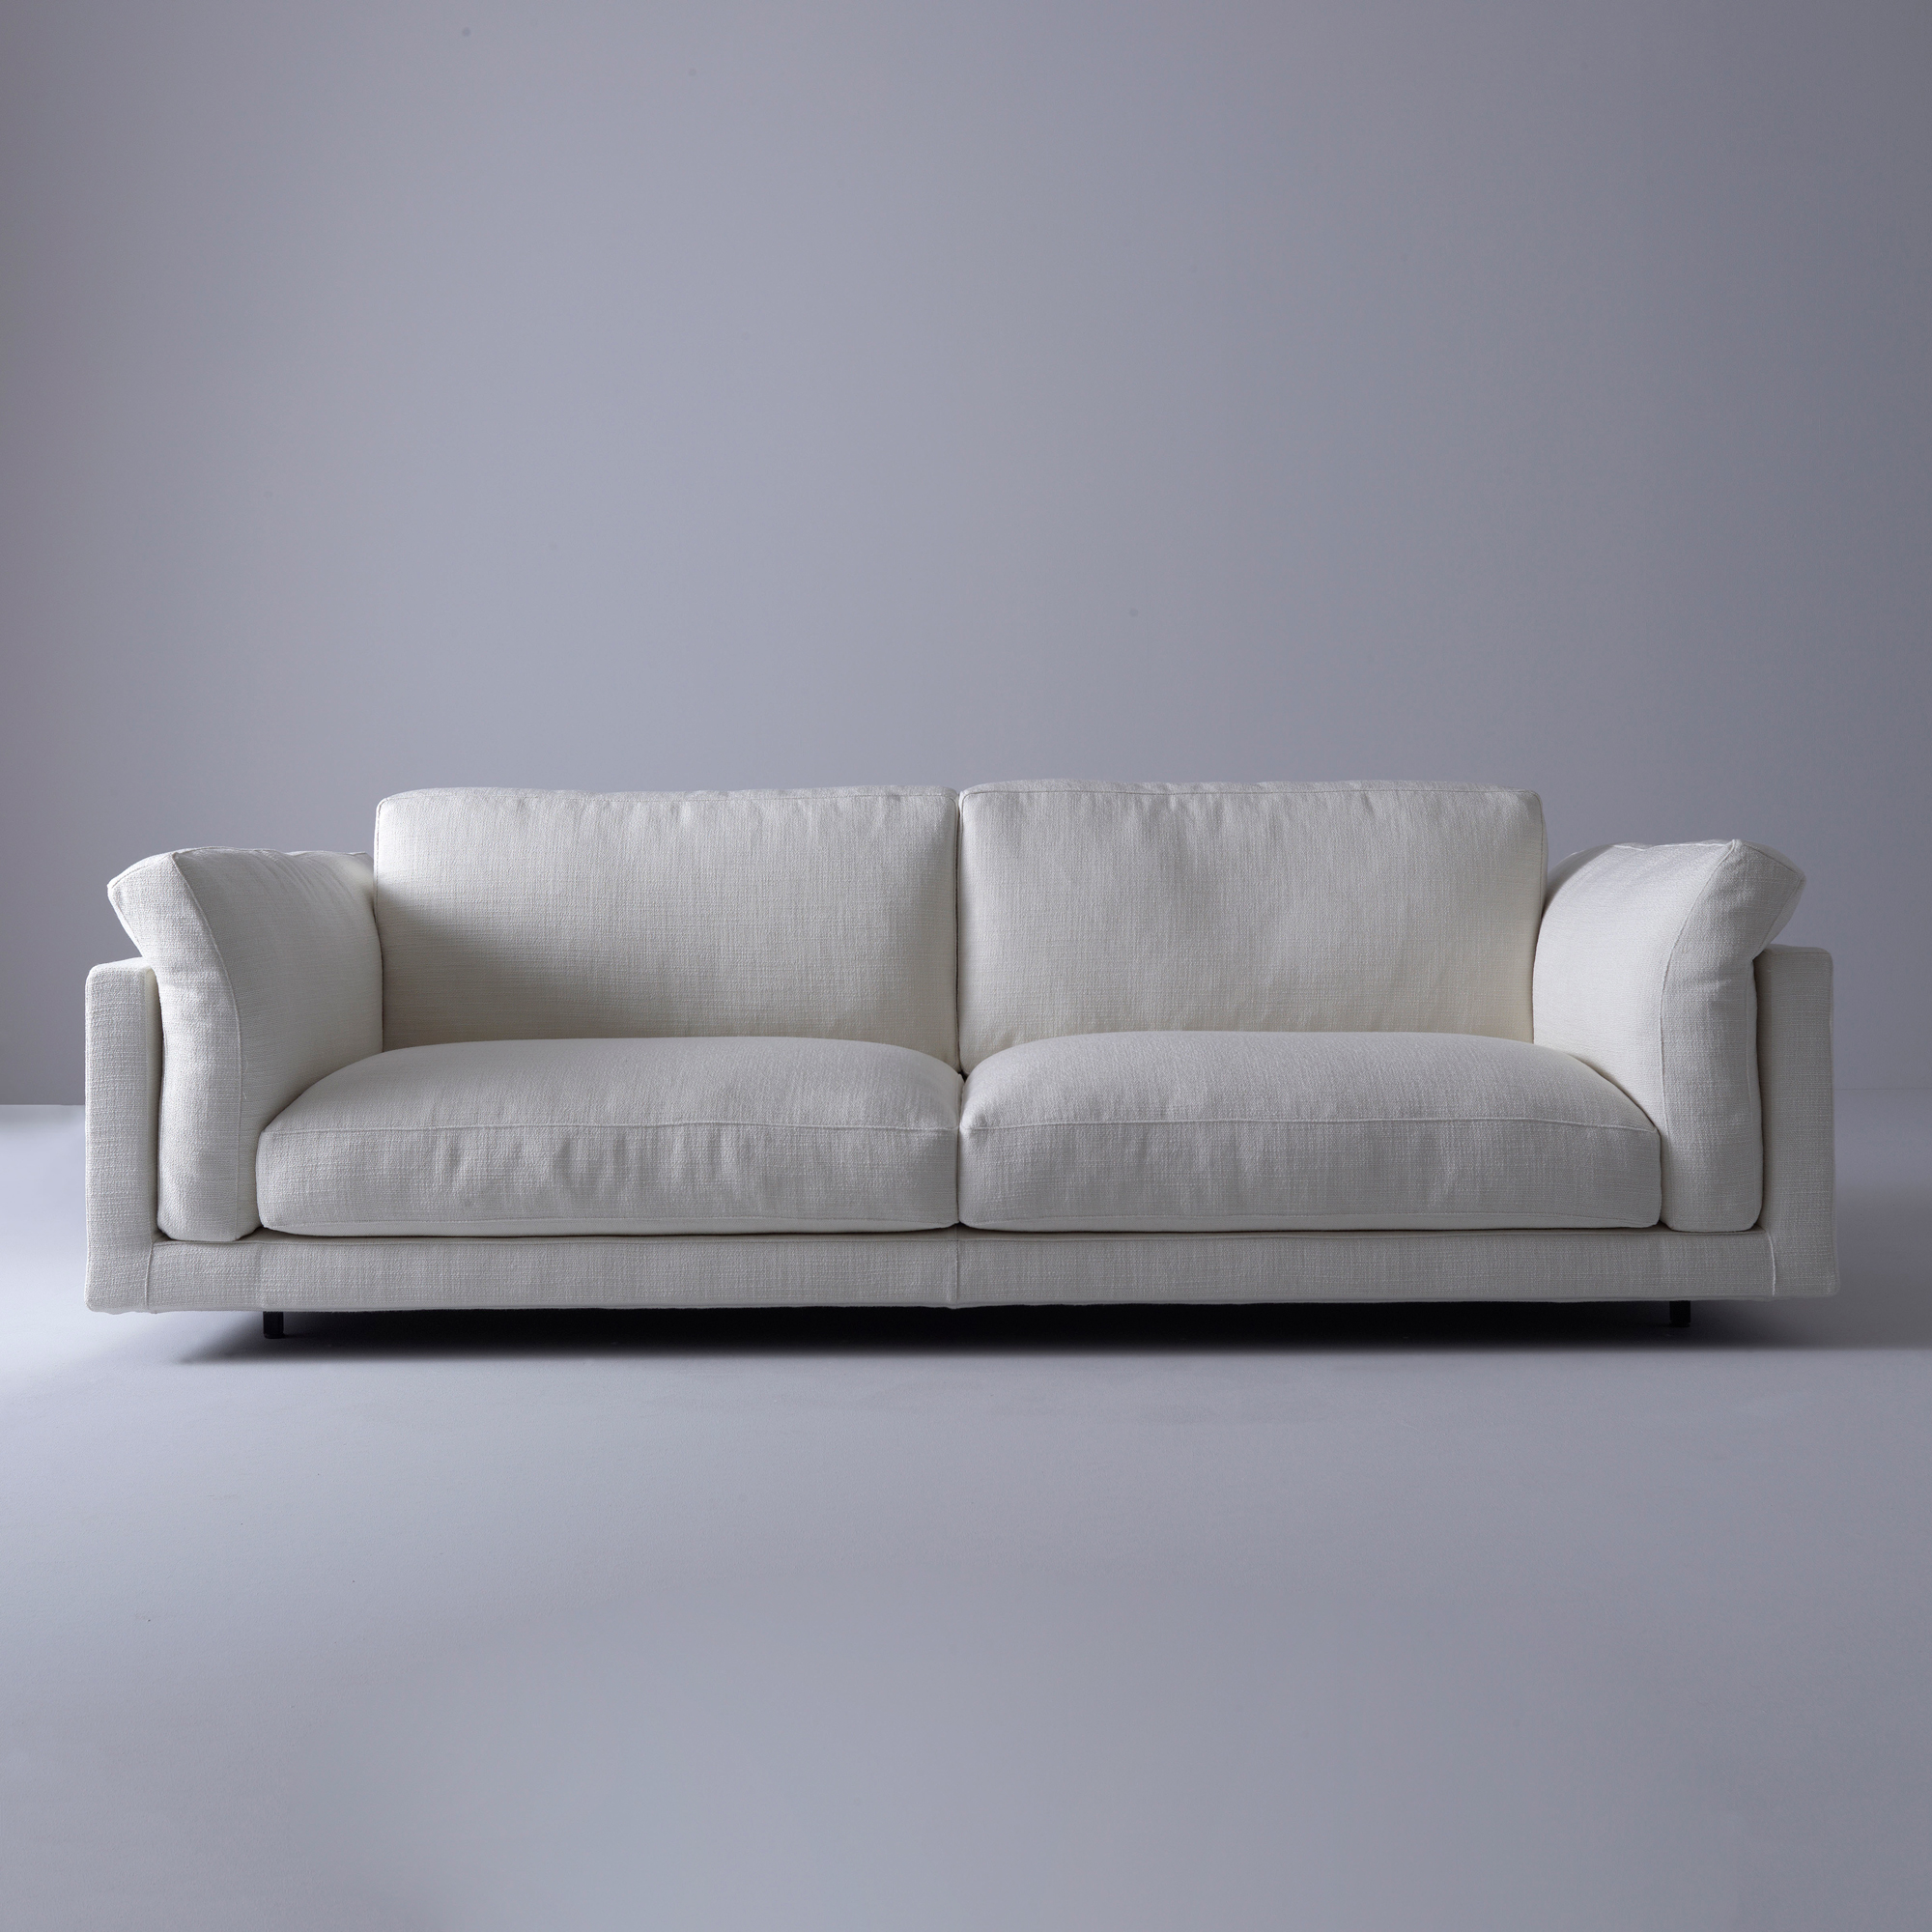 Contemporary Italian Host Sofa